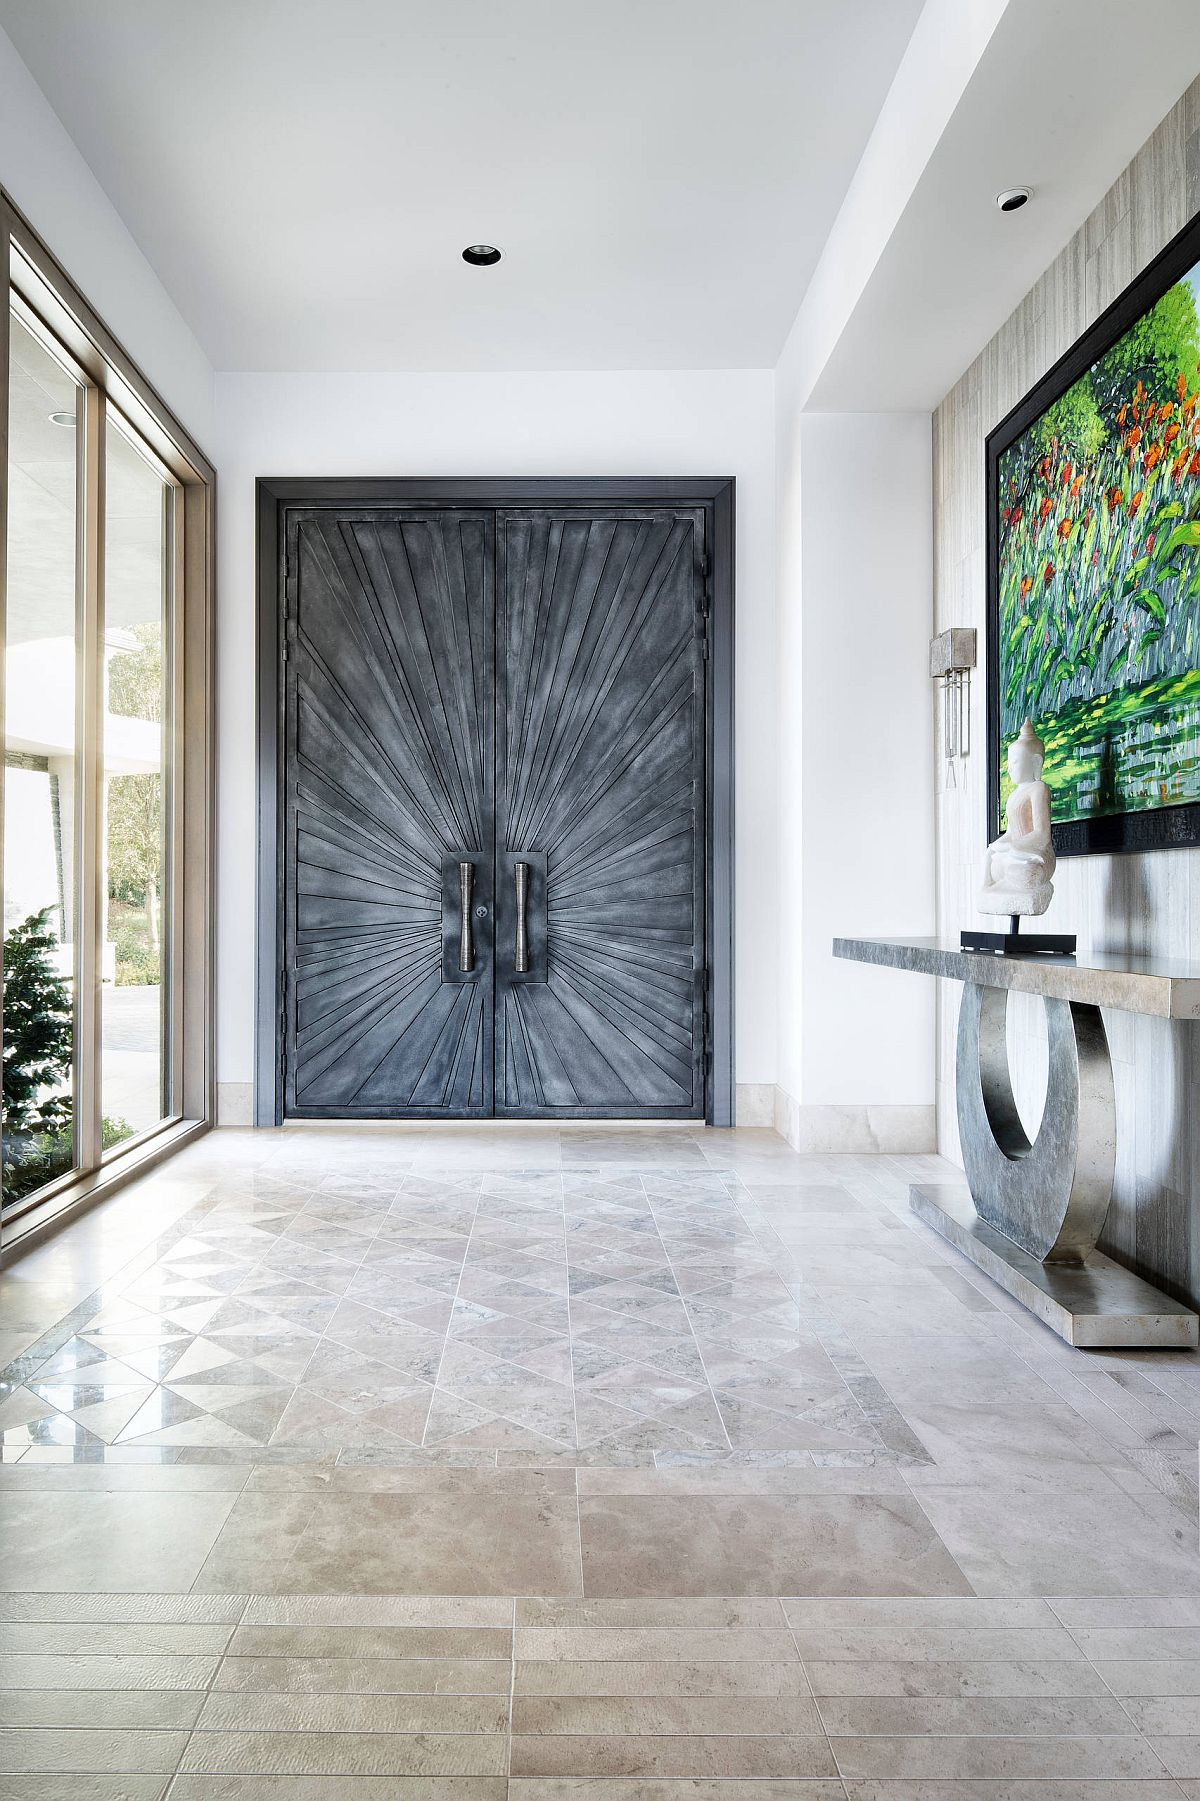 Even the modern minimal entry can feel opulent when done right